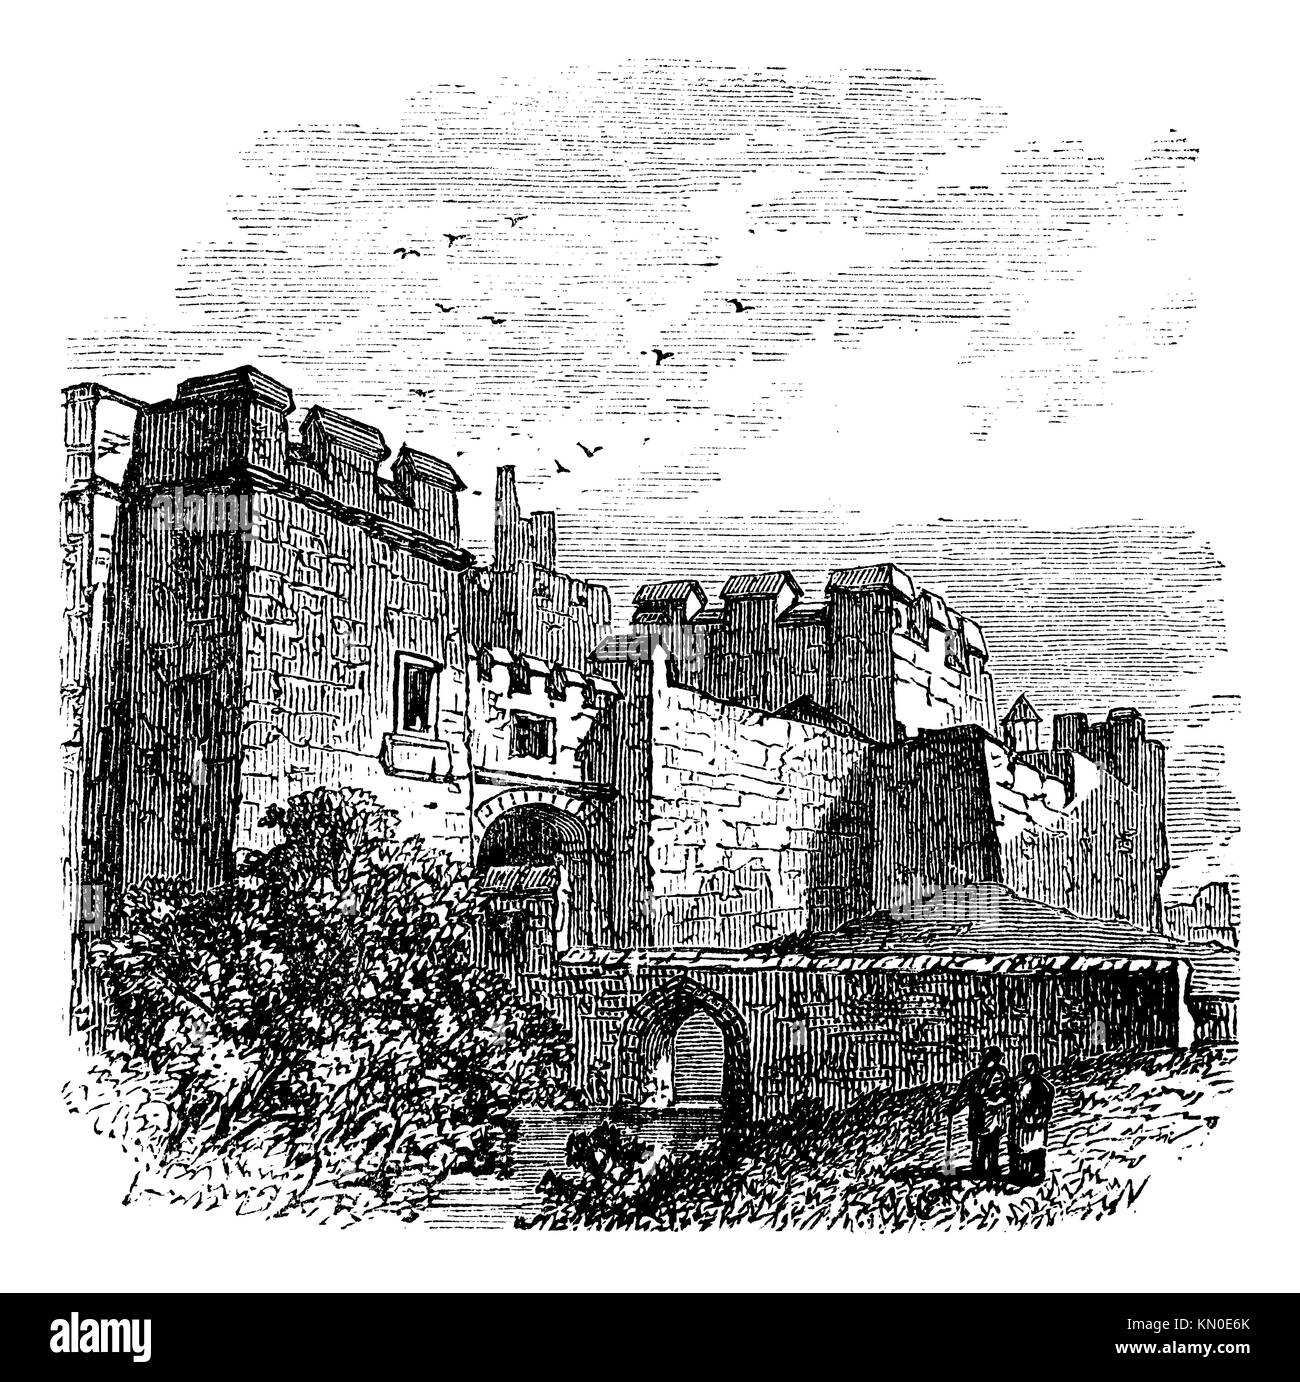 Entrance of the castle Carlisle, in Carlisle, county of Cumbria, United Kingdom vintage engraving, 1890s  Old engraved - Stock Image